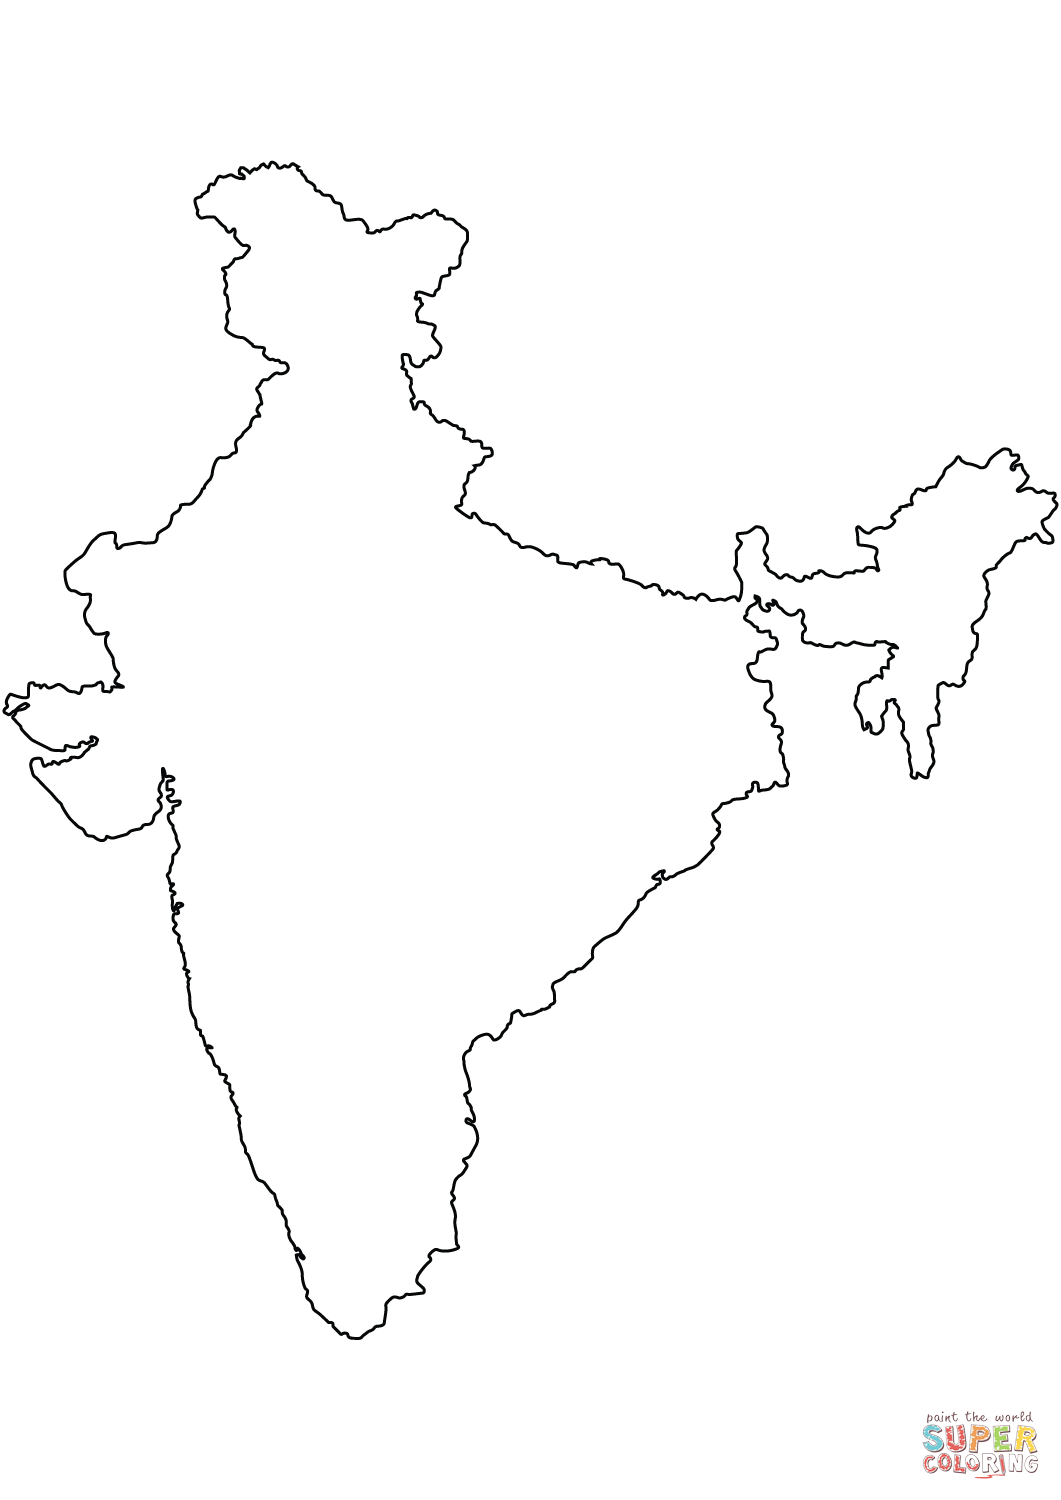 blank map of india india free map free blank map free outline map free blank map of india